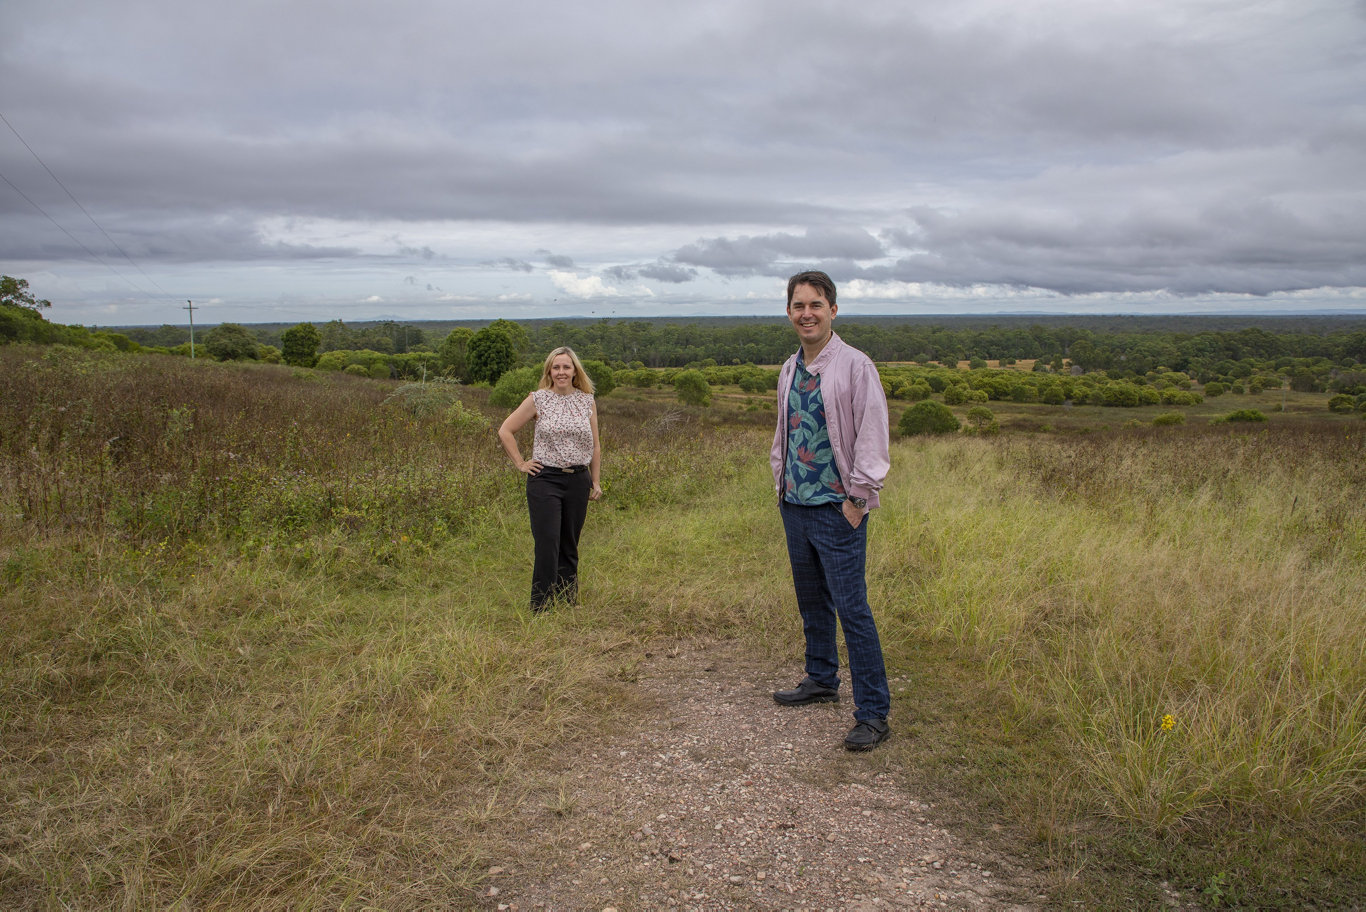 The council has bought a 60ha property on the ridgeline at Takura to add to the region's conservation network.Pictured is Councillor Jade Wellings and Mayor George Seymour.